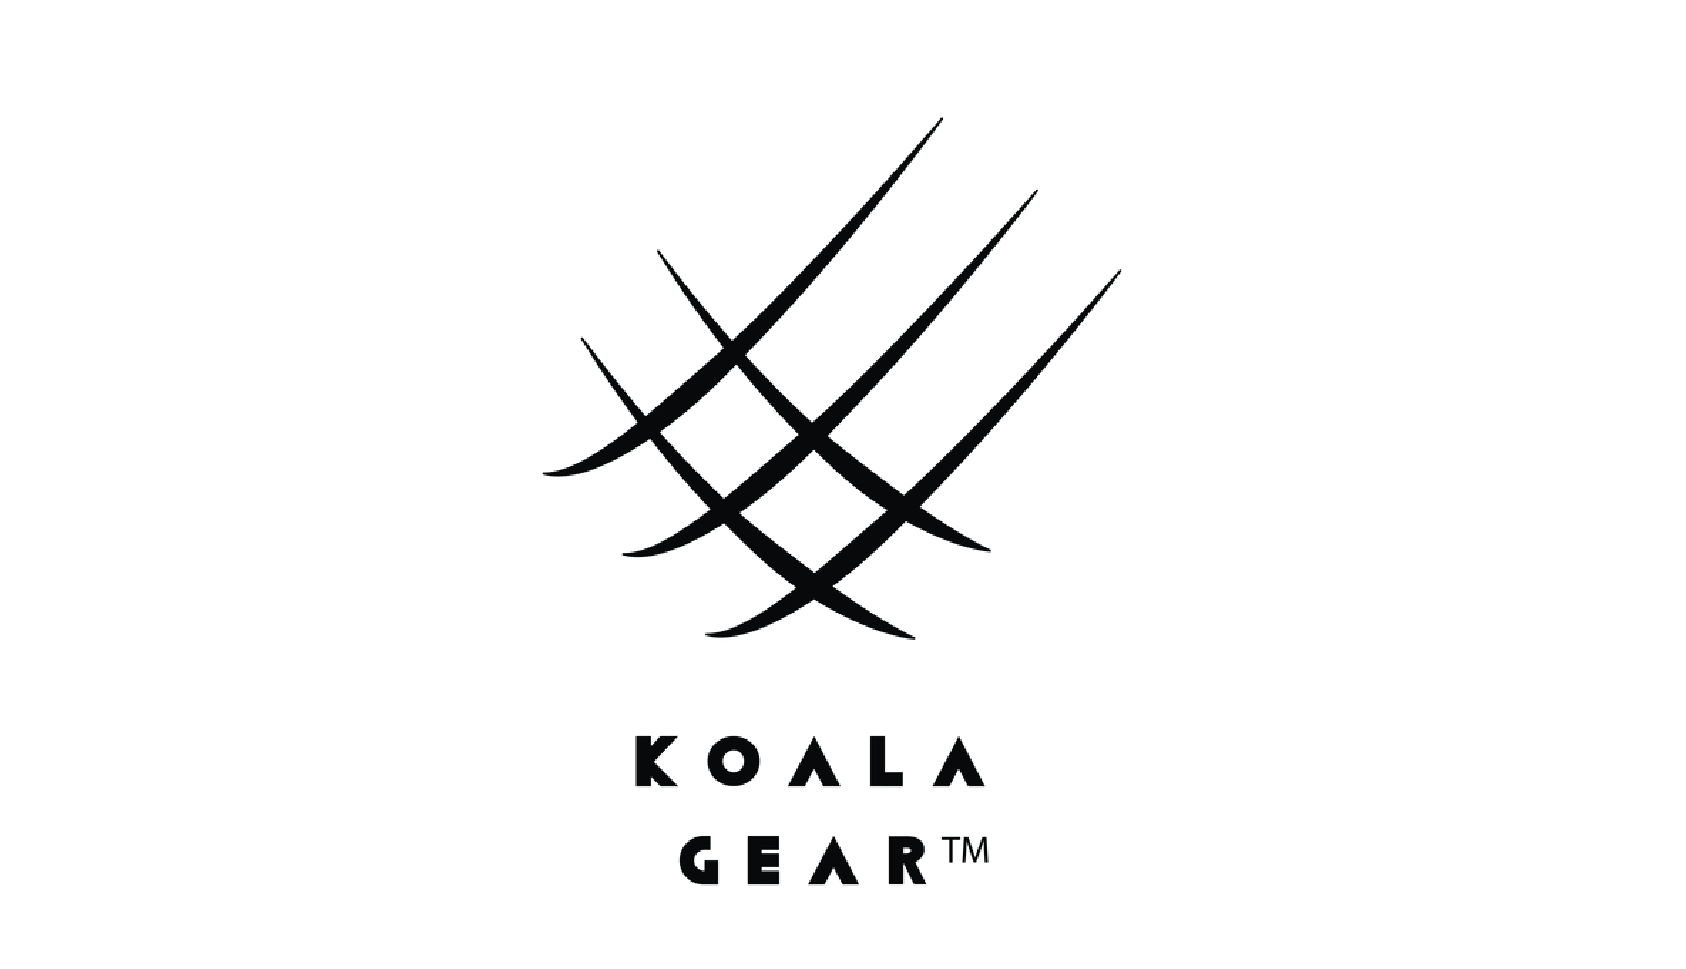 koala gear logo new